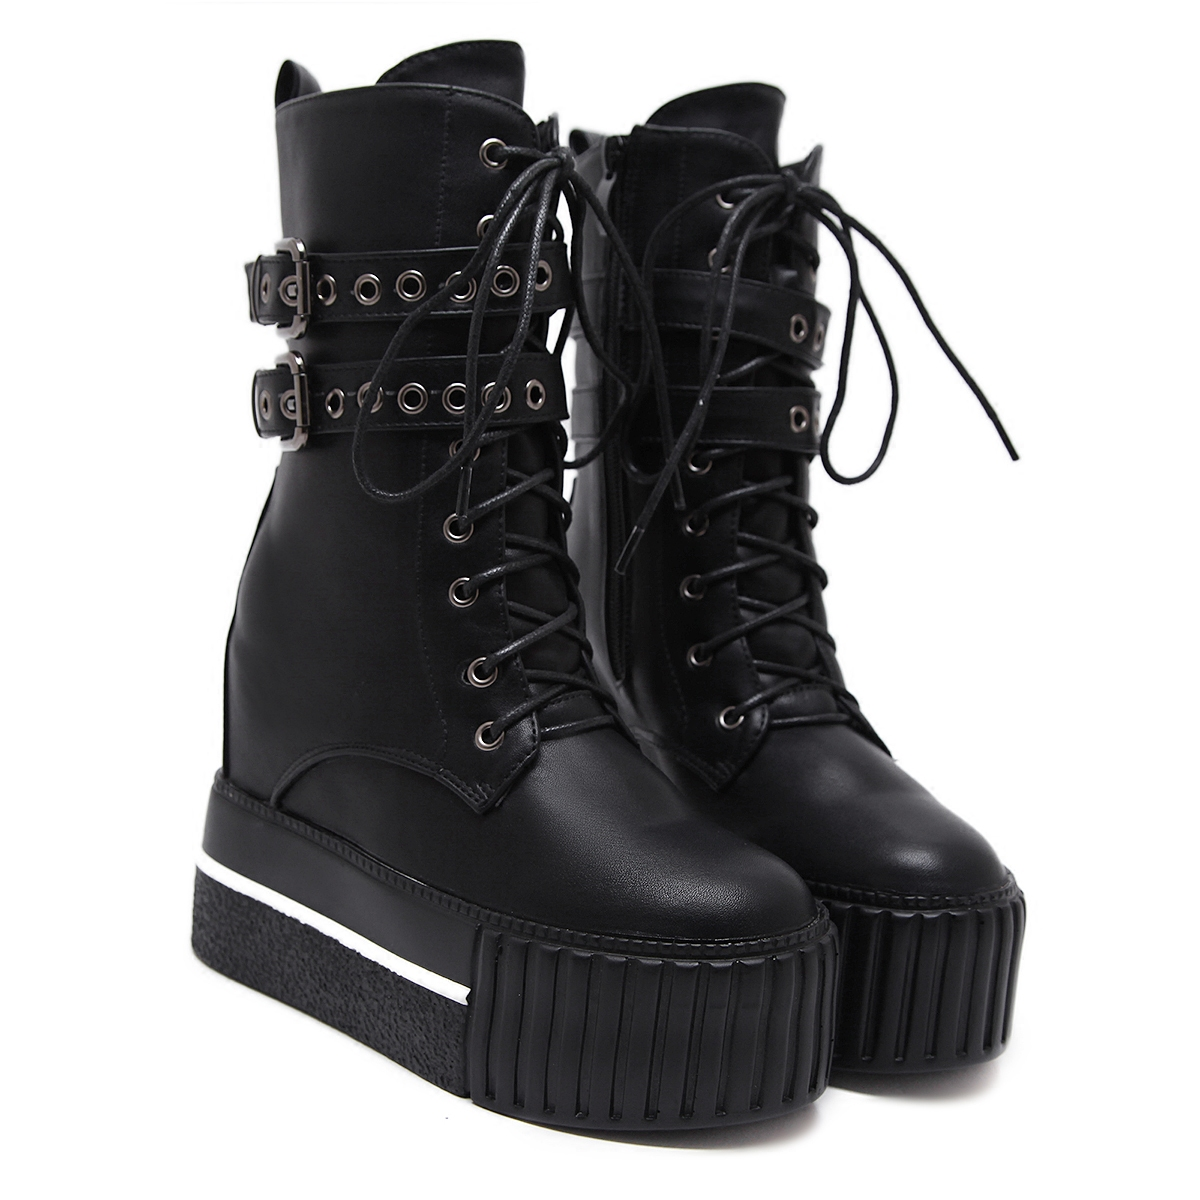 New Thick Bottom Boots 2019 Autumn And Winter Women's High Boots Ins Martin Women Boots